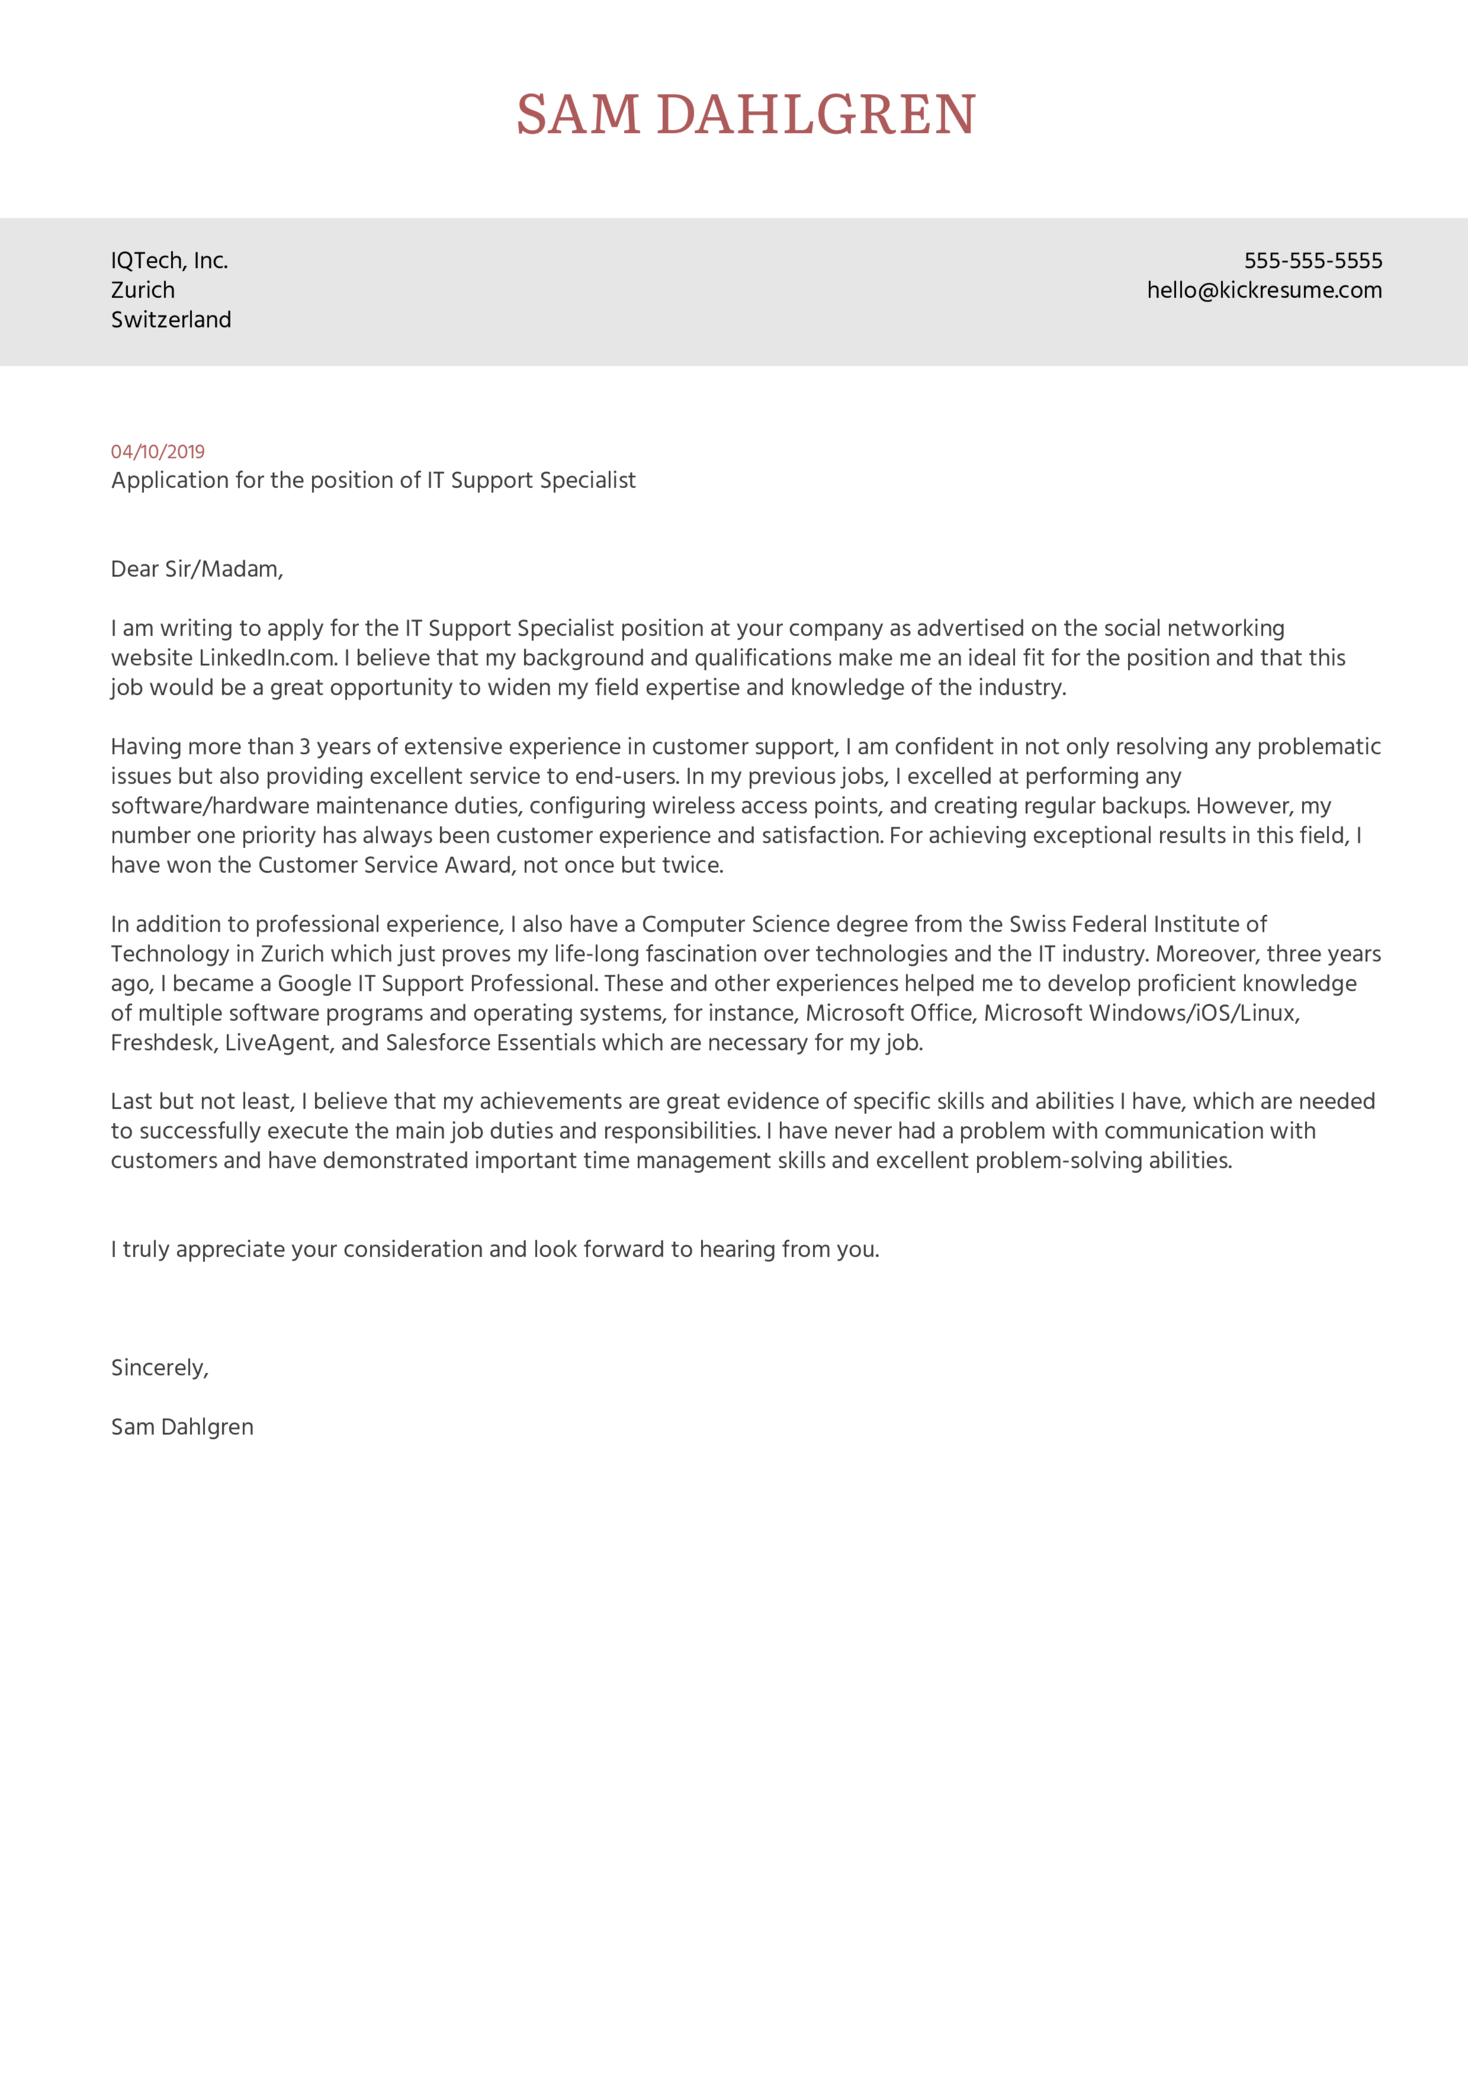 Cover Letter Examples by Real People: IT Support Specialist ...